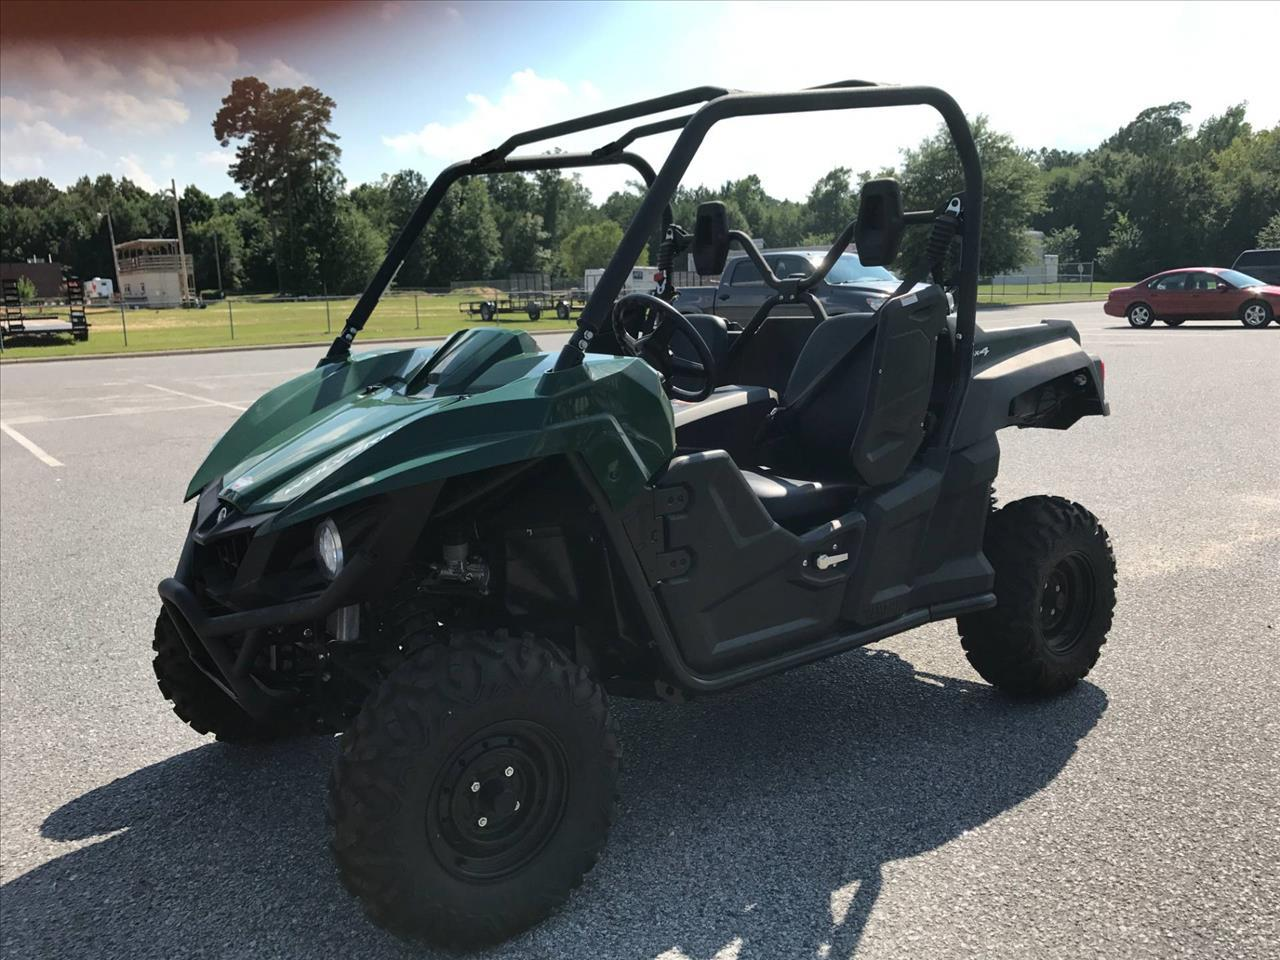 2017 Yamaha Wolverine for sale at Vehicle Network, LLC - Ron Ayers Motorsports in Greenville NC